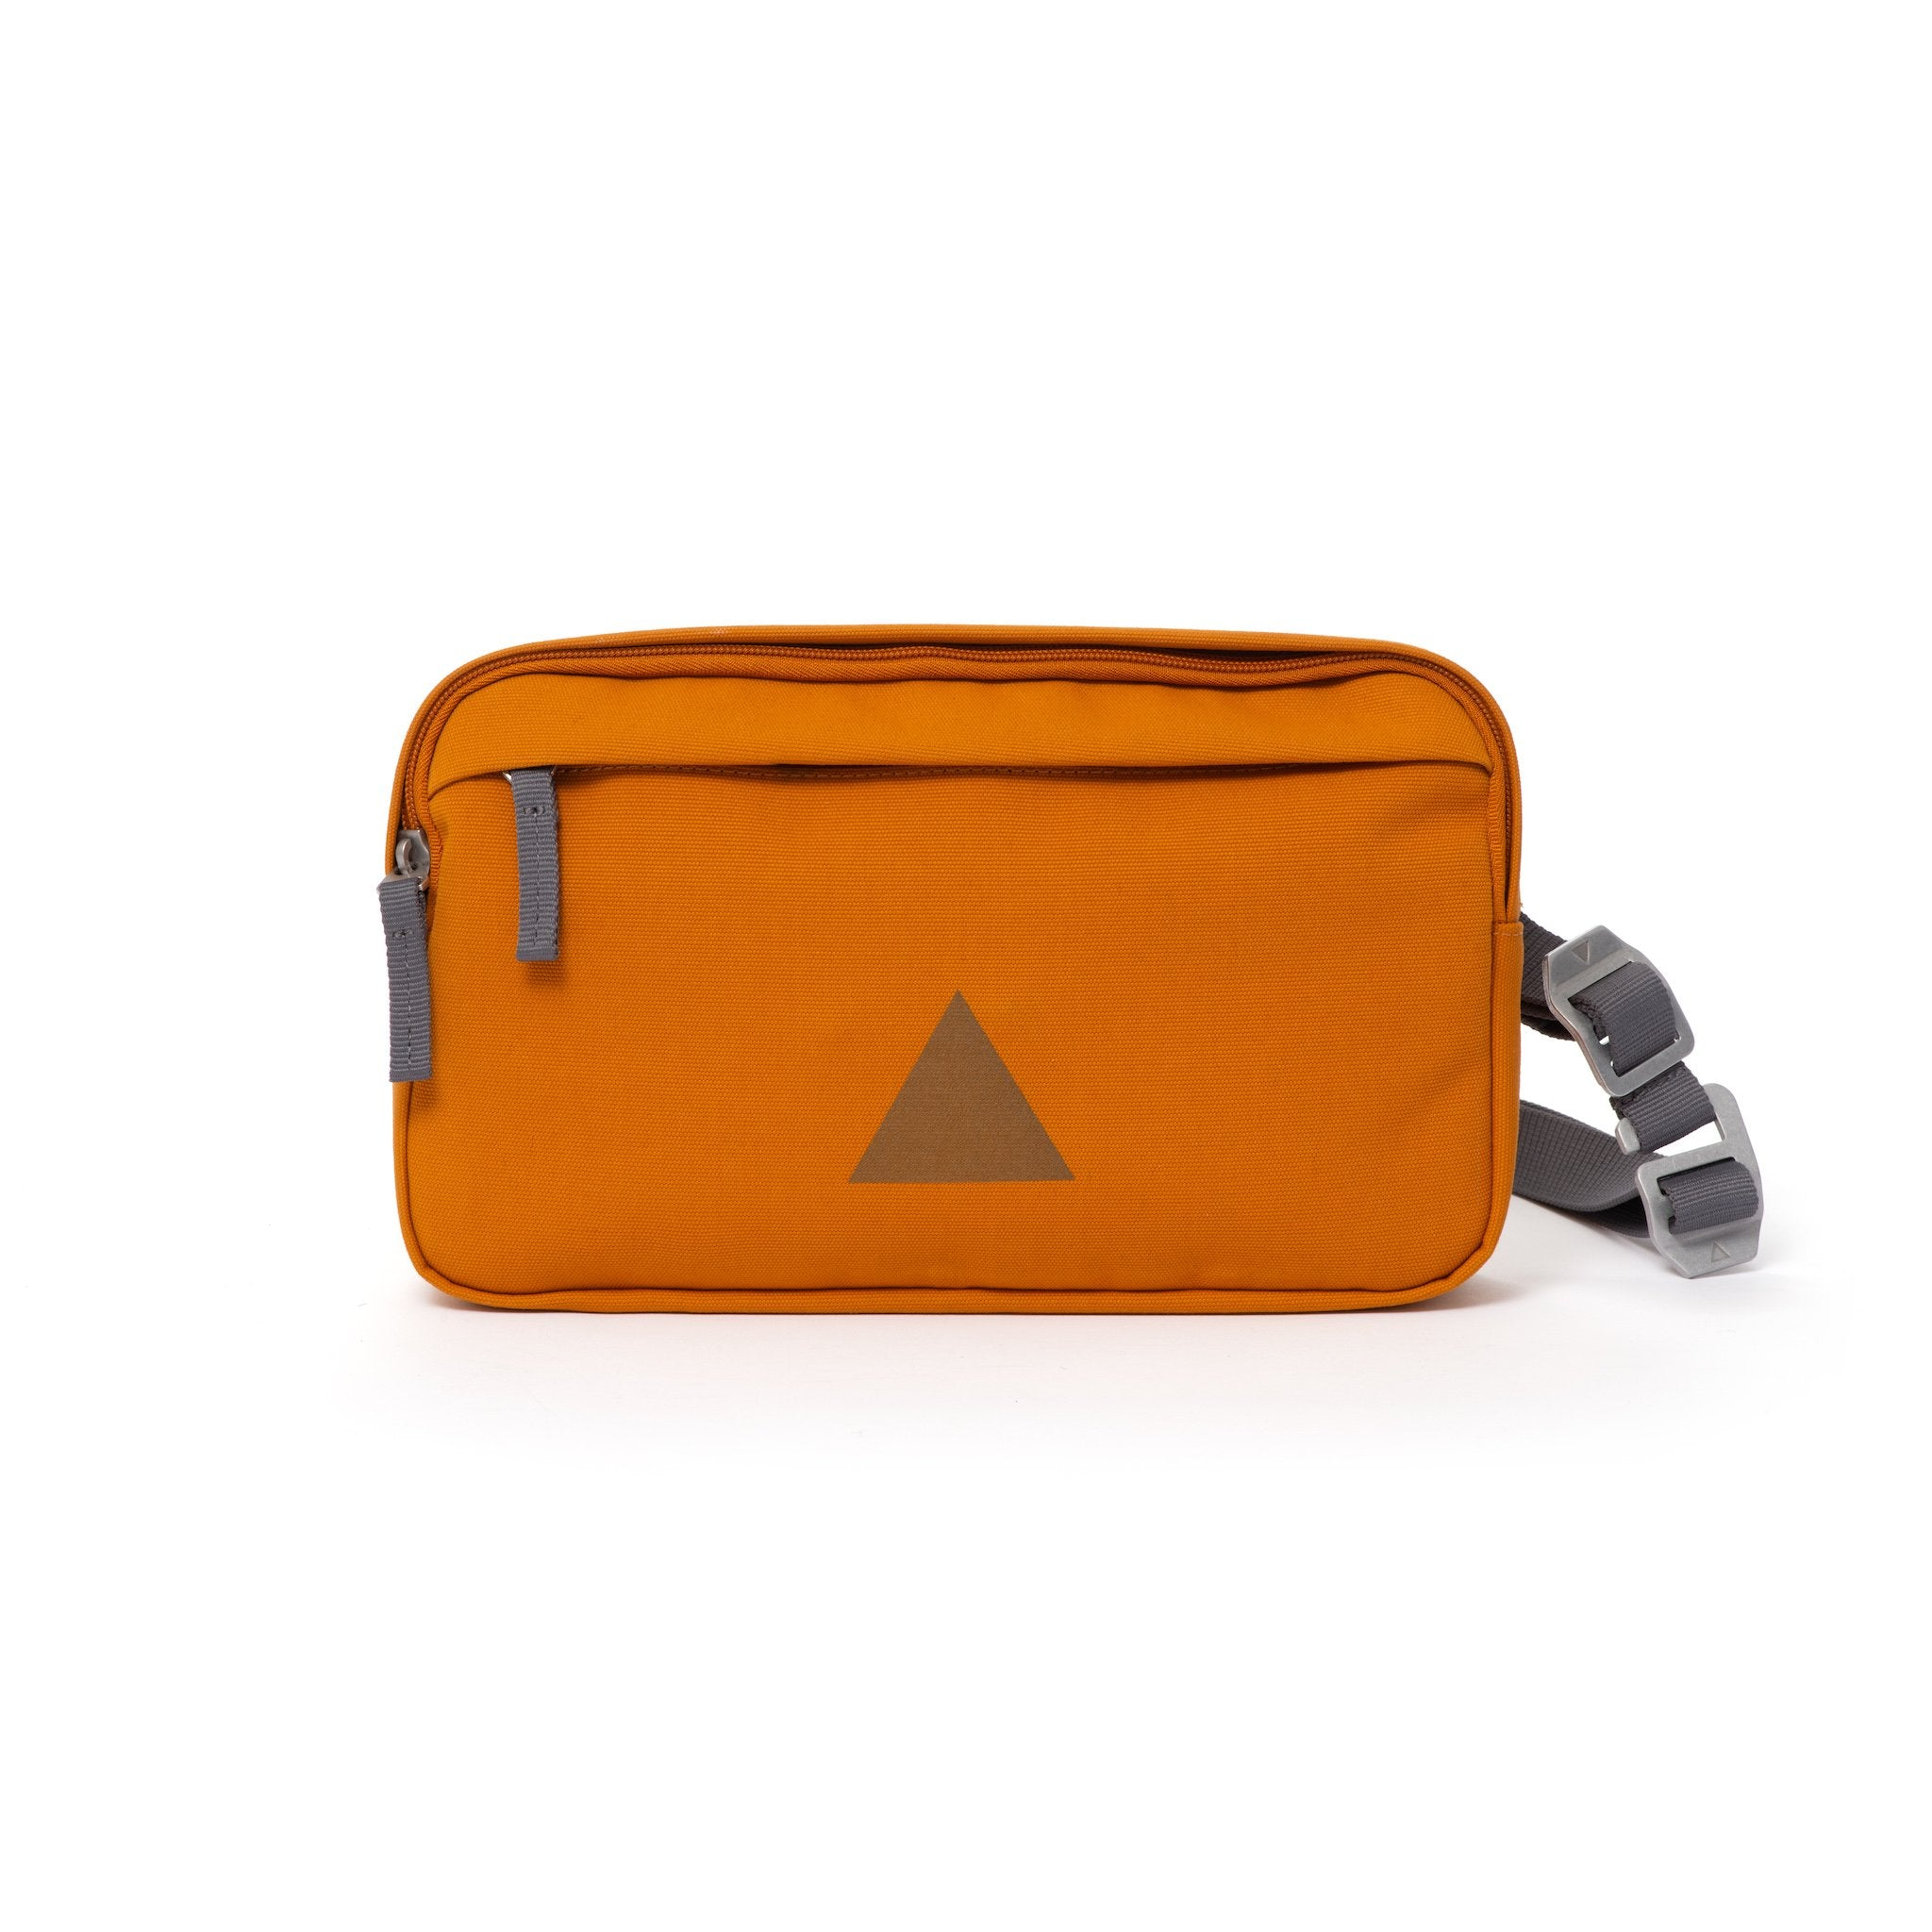 Orange Grey canvas shoulder bag with front zip pocket, webbing strap and aluminium buckles.